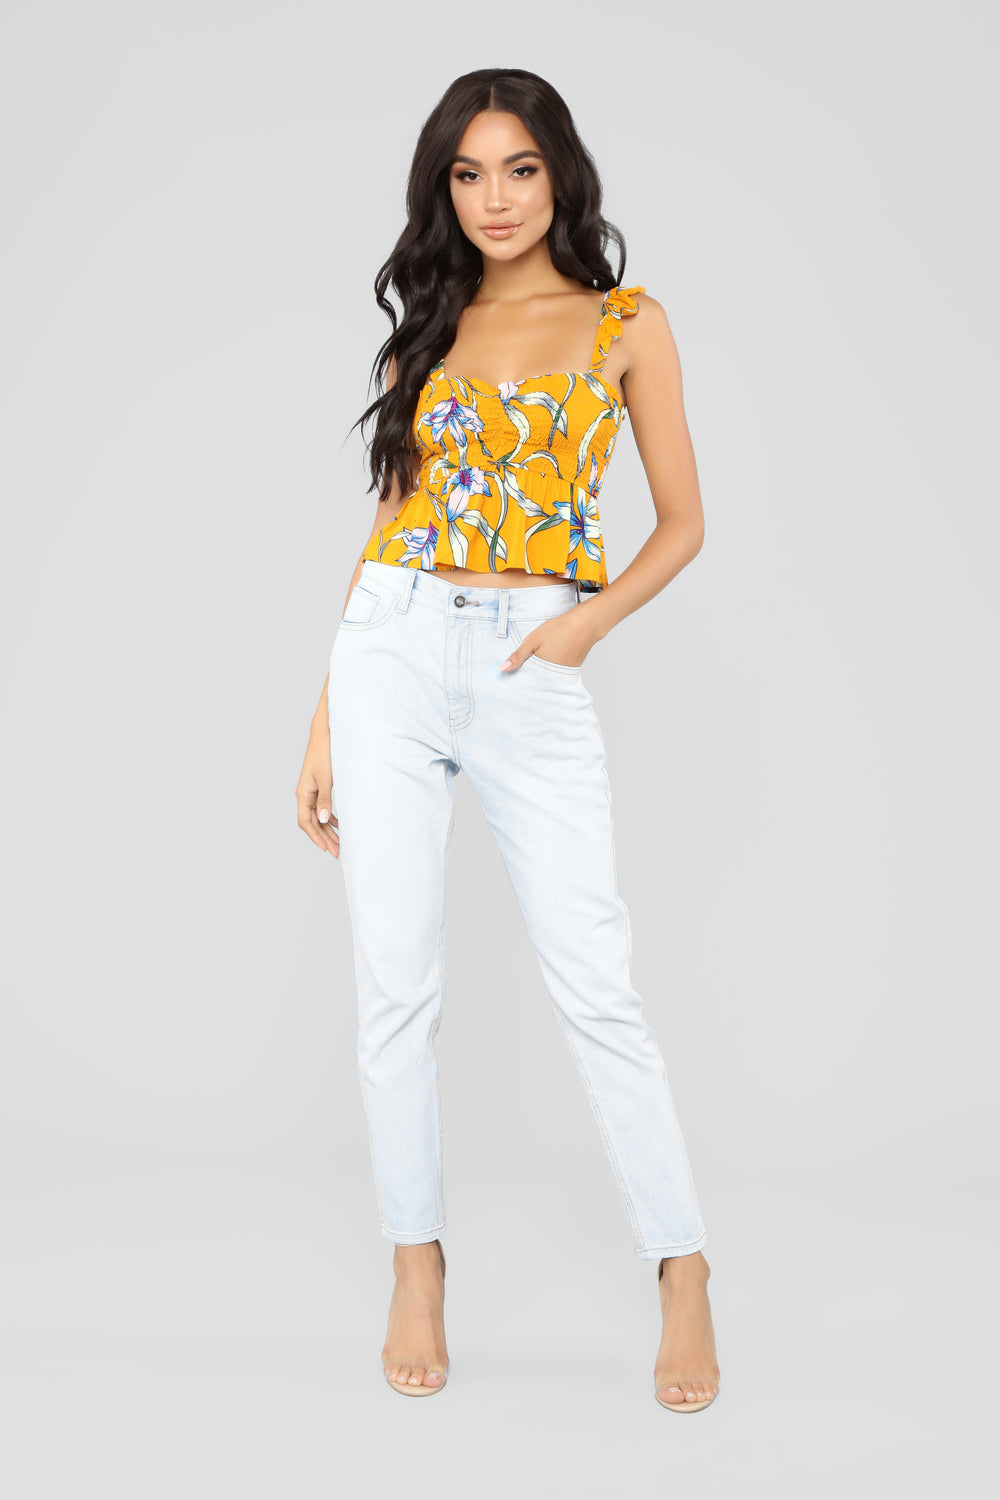 All The Right Places Boyfriend Jeans - Light Wash